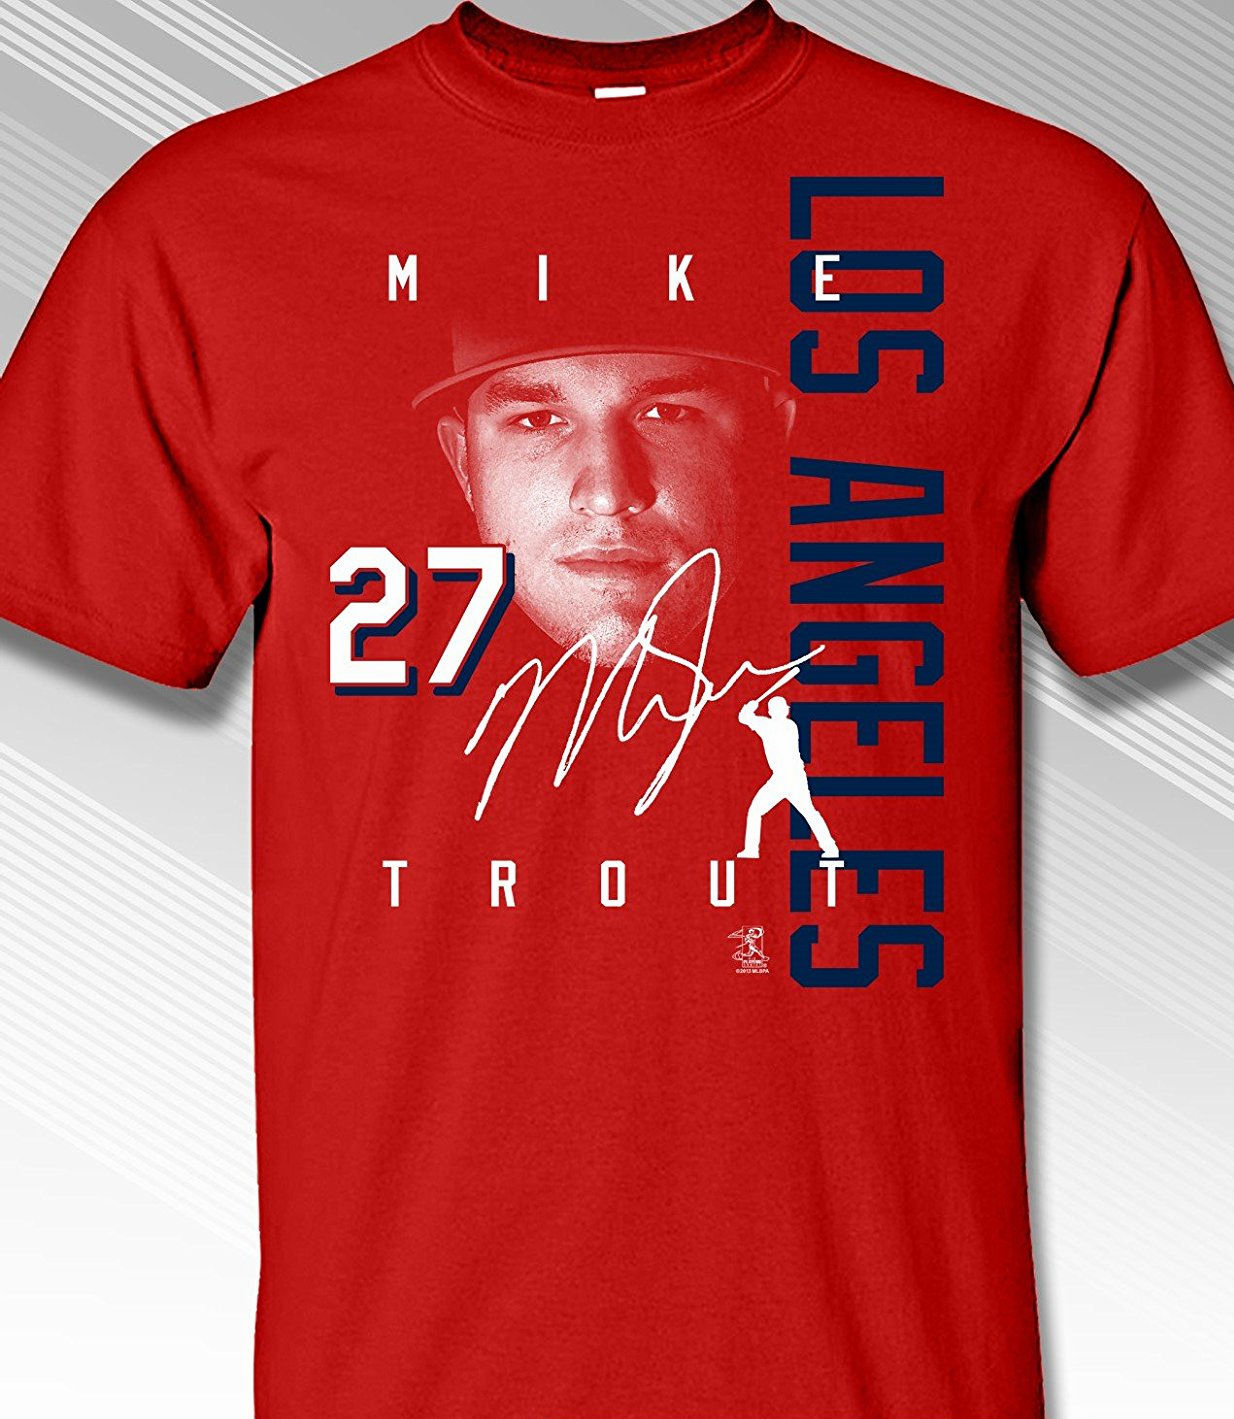 Mike Trout Los Angeles Signature T-Shirt<br>Short or Long Sleeve<br>Youth Med to Adult 4X